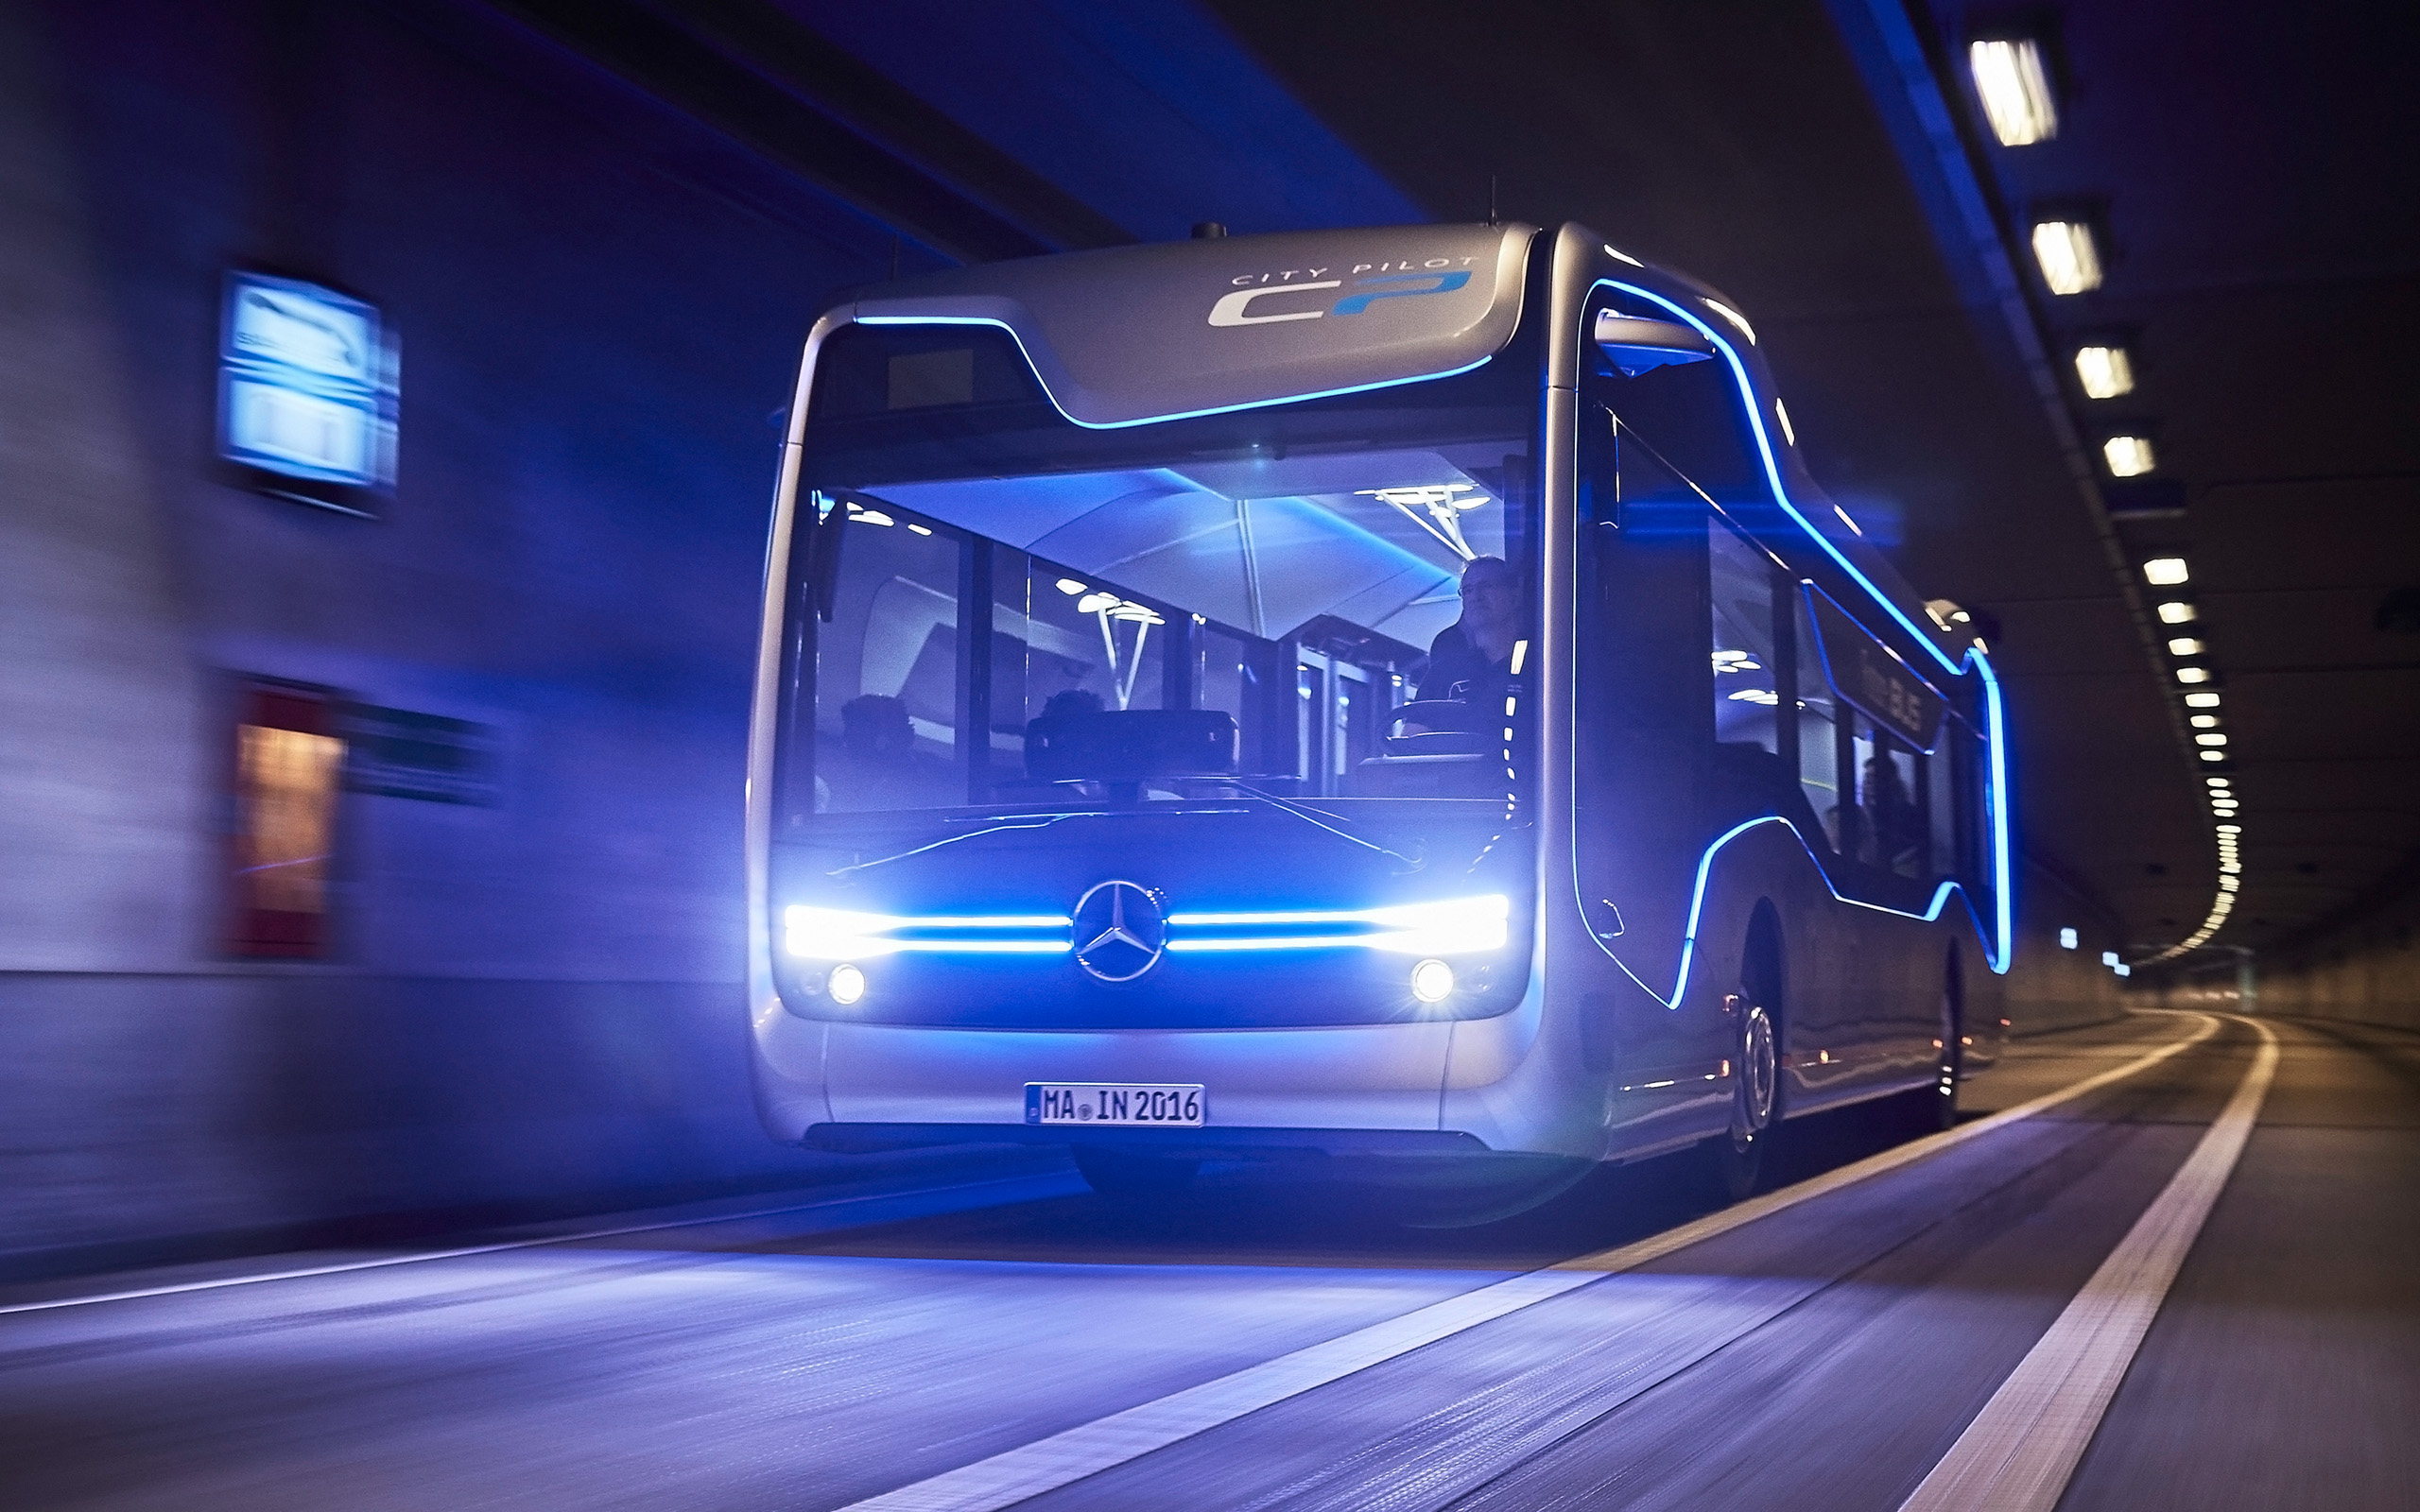 Mercedes Benz Future Bus 2016 wallpaper